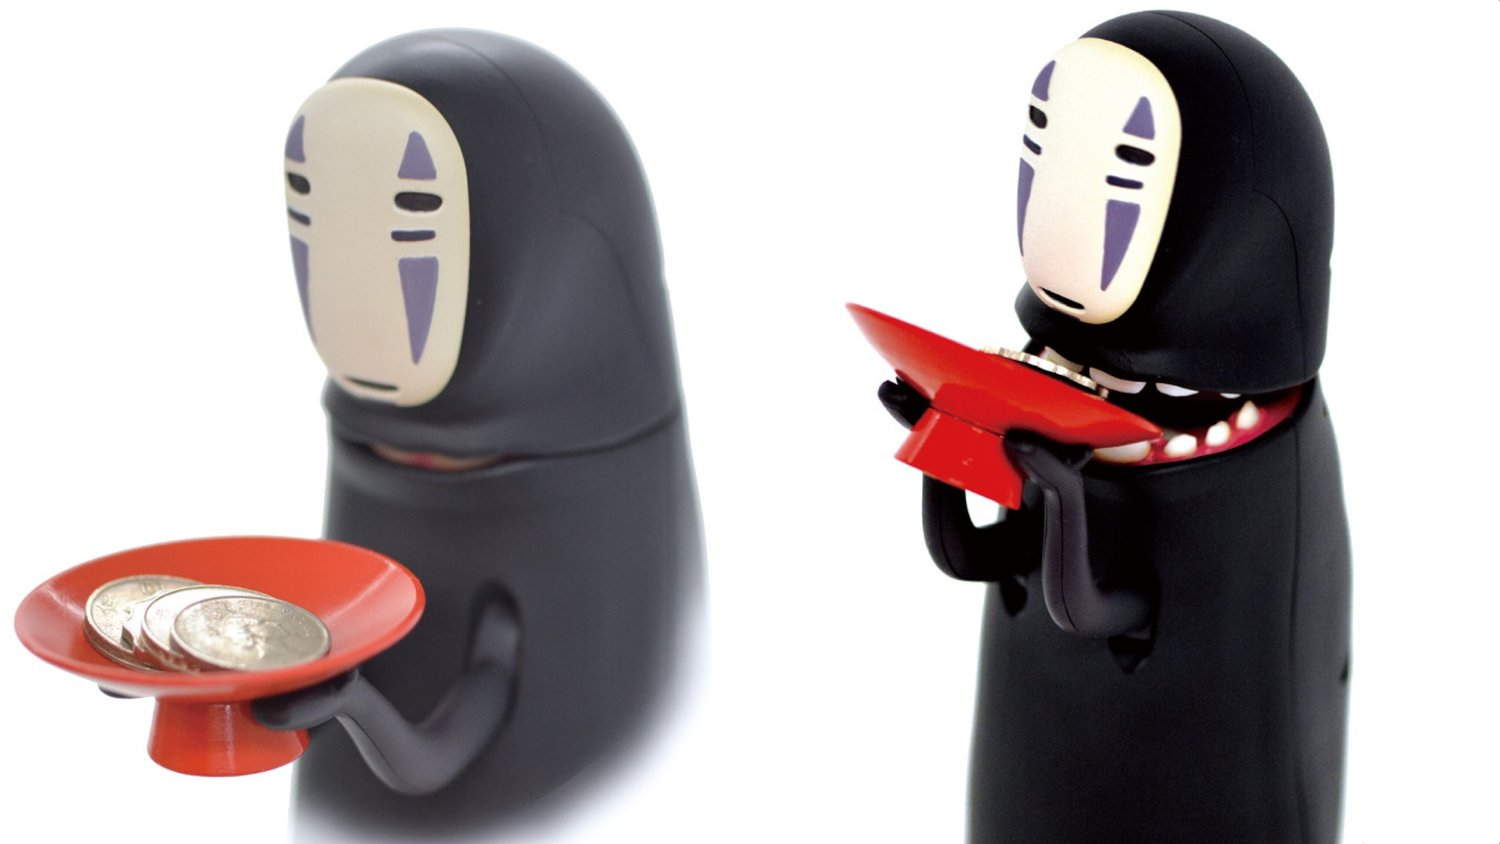 SPIRITED AWAY-Inspired No-Face Piggy Bank Eats Coins, Burps, and More